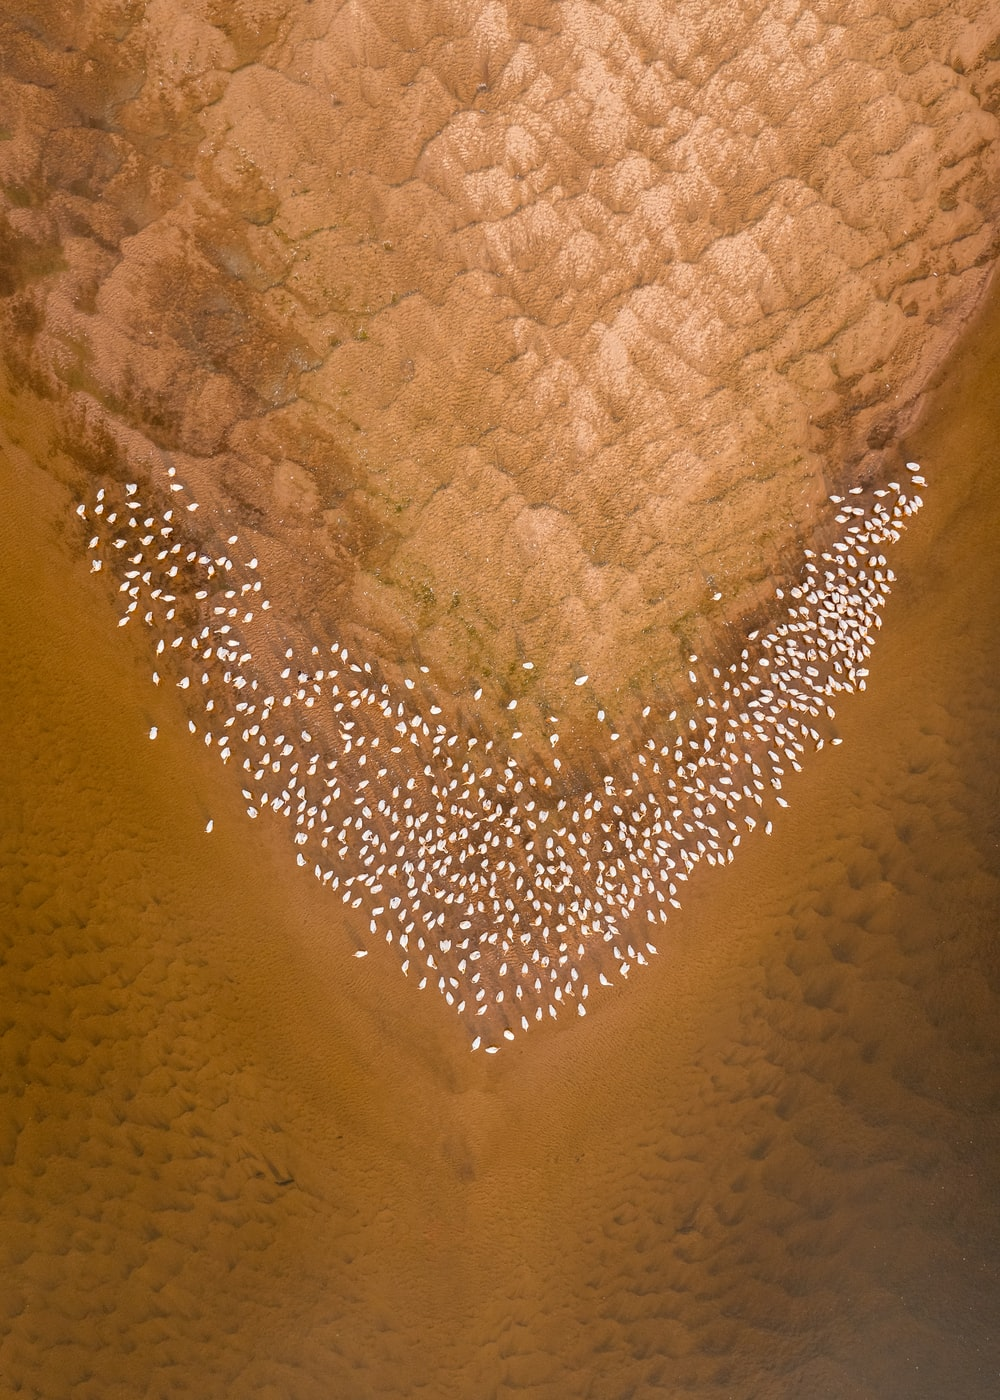 brown sand with heart shaped